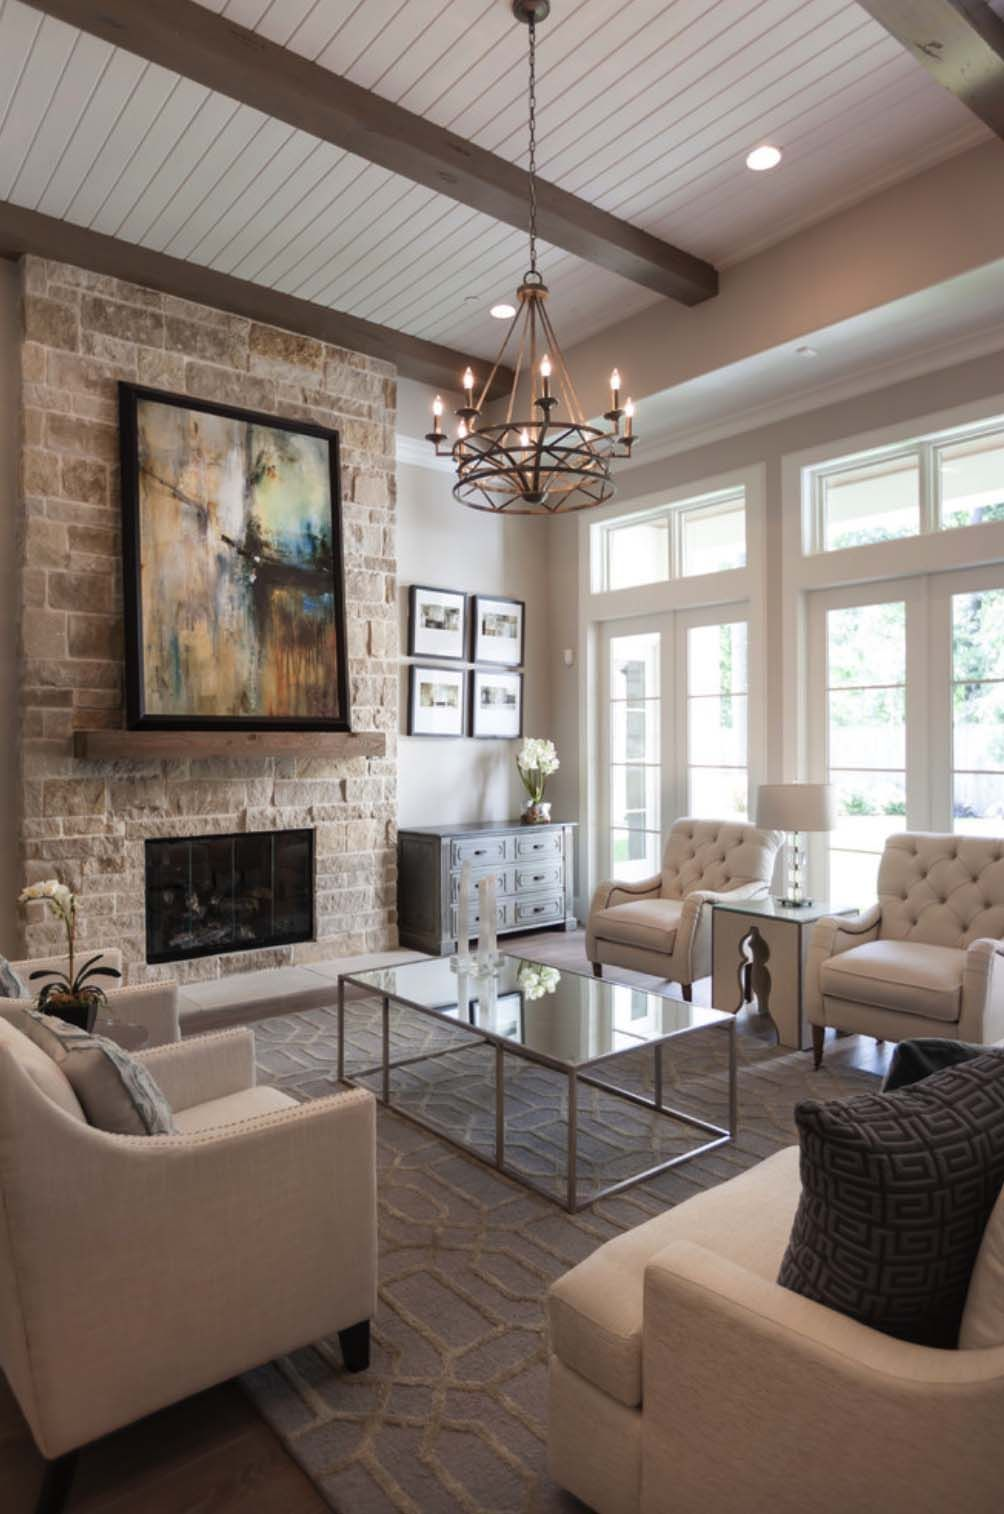 transitional style living room extension cord gorgeous woodlands reserve home features warm and inviting interiors this was designed by frankel building group located in the houston texas